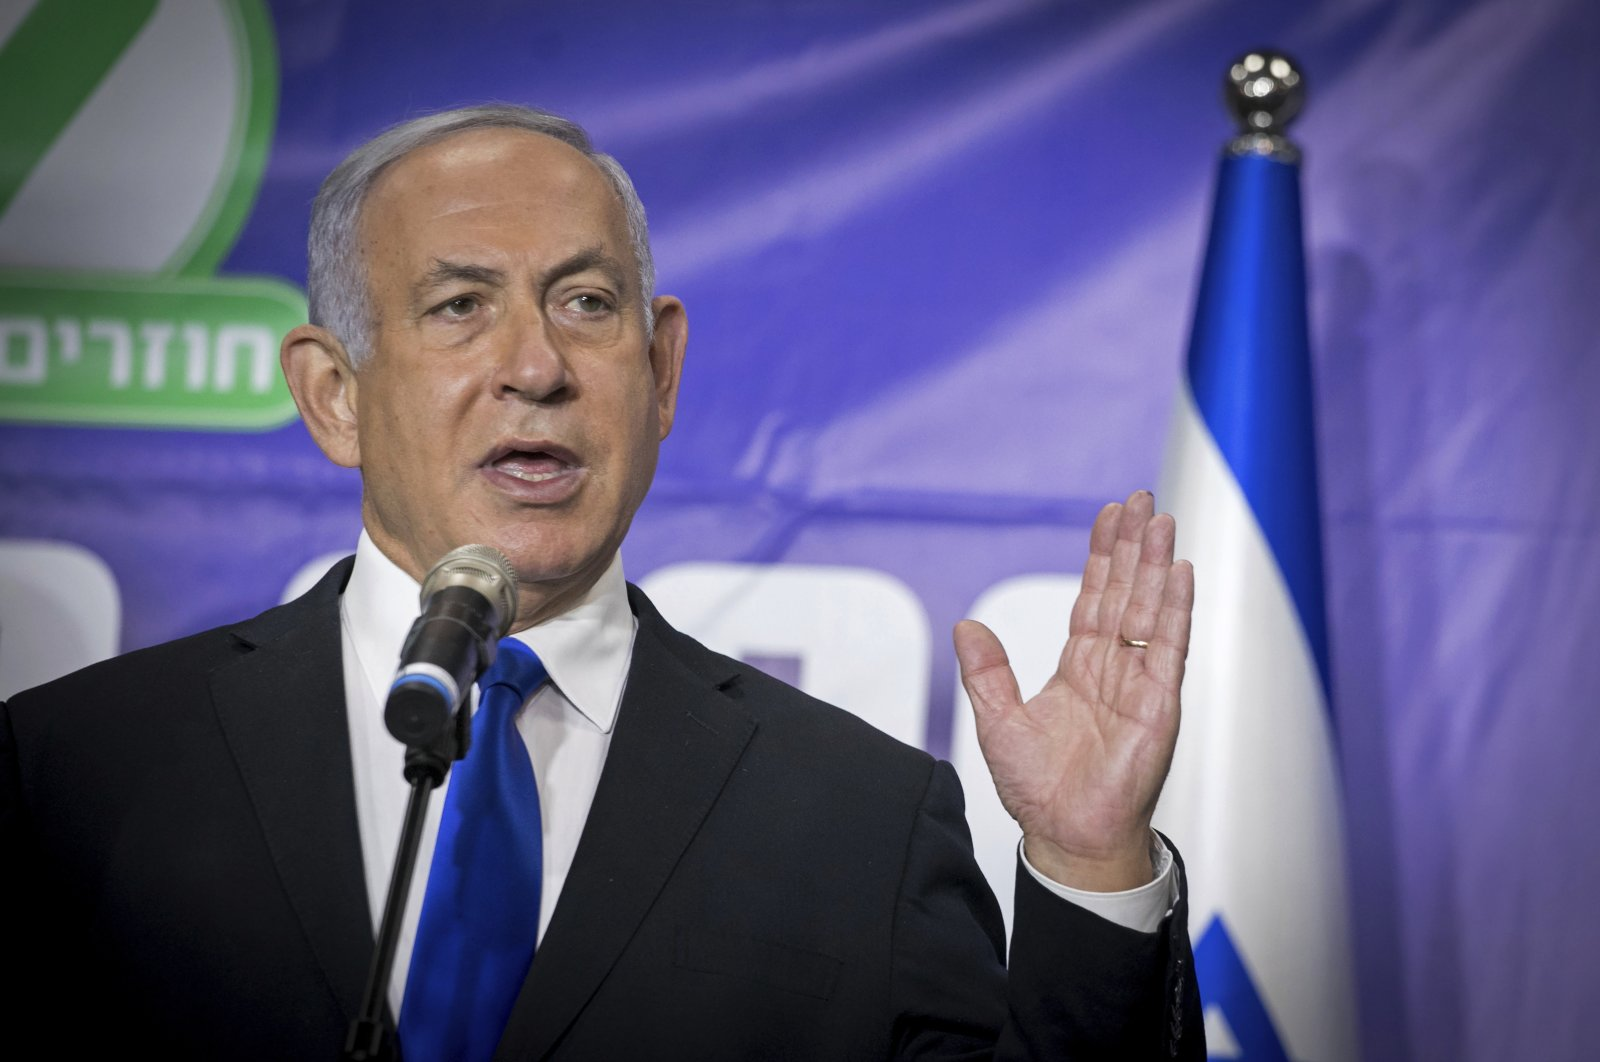 Israeli Prime Minister Benjamin Netanyahu speaks to journalists after meeting the Israeli citizen who was the 5 millionth person to be vaccinated in Israel, at a ceremony in Tel Aviv, Israel, March 8, 2021. (AP Photo)